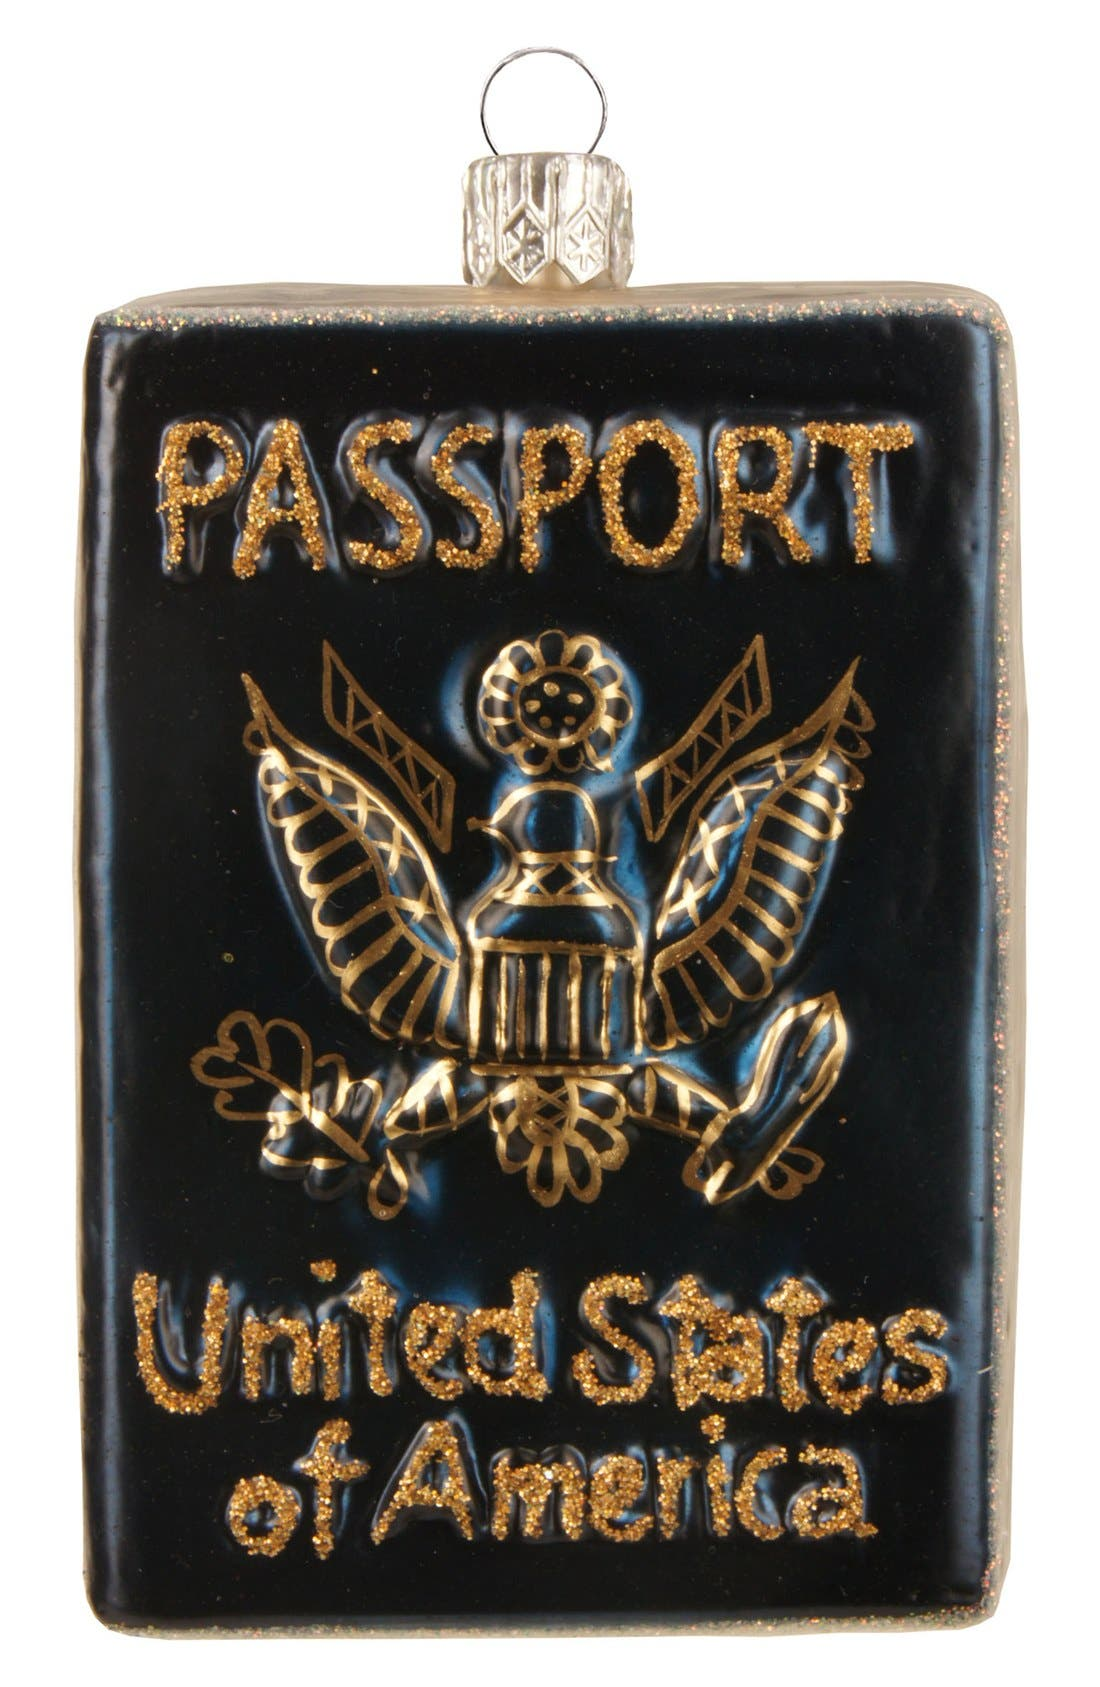 Nordstrom at Home 'USA Passport' Ornament